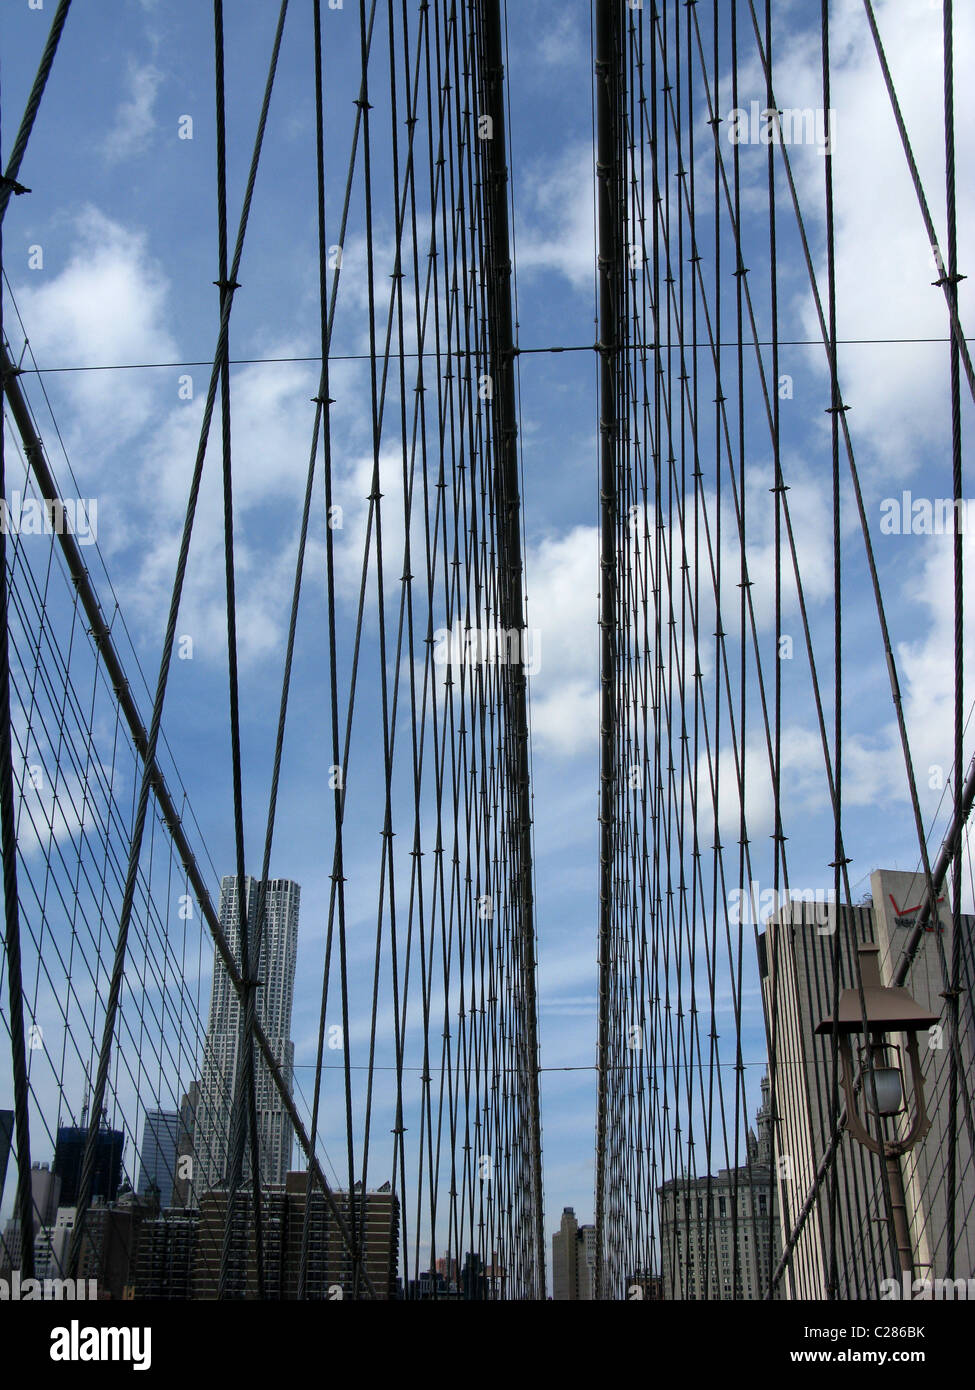 Ponte di Brooklyn, New York City, Stati Uniti d'America Immagini Stock